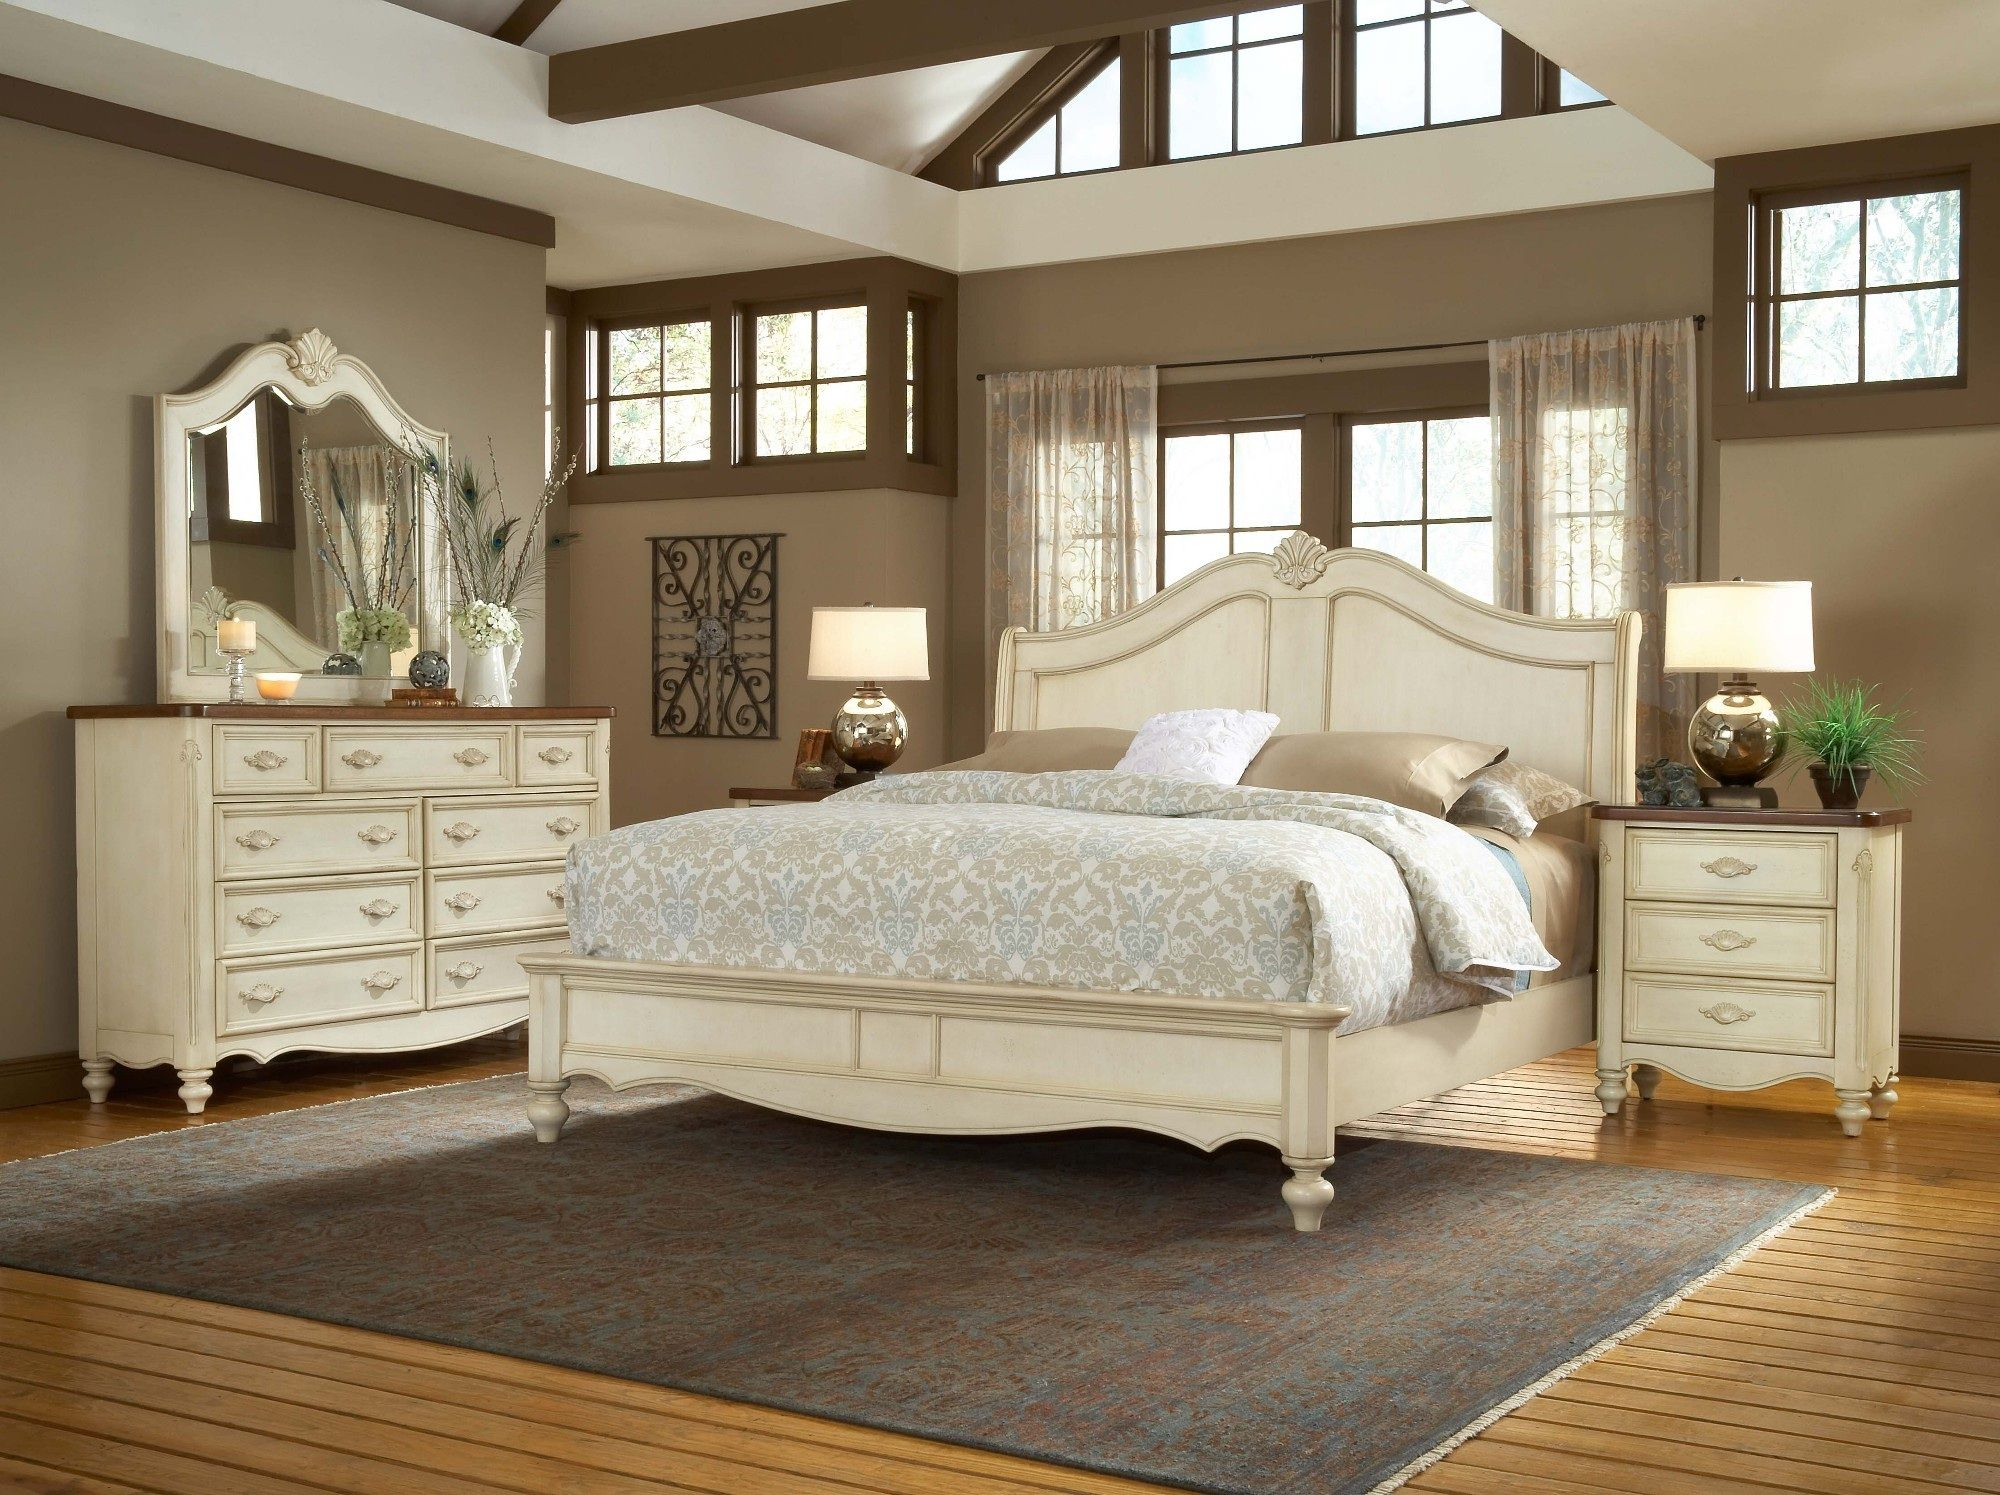 Enchanting ikea bedroom sets future home antique - White vintage bedroom furniture sets ...